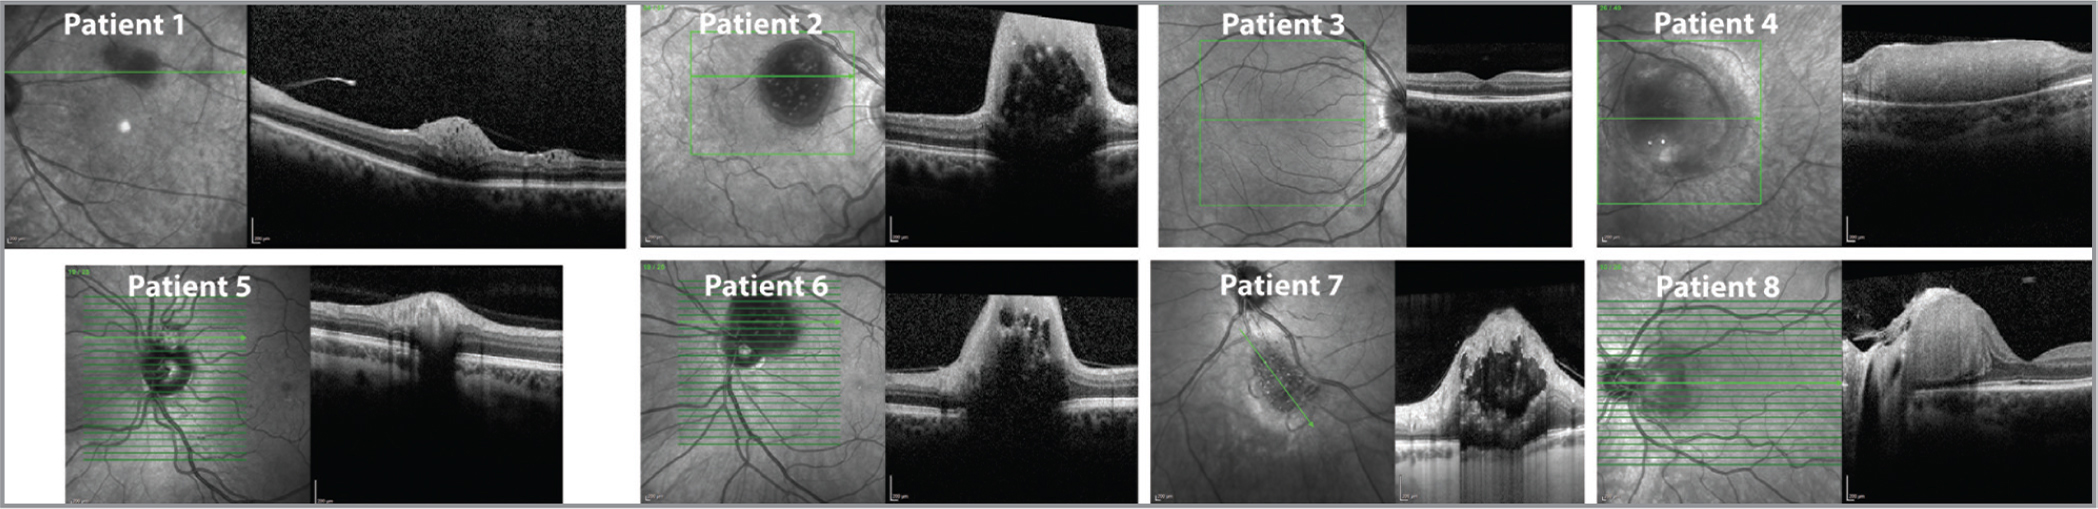 Ocular coherence tomography of all patients upon presentation. Images are numbered corresponding to the patient labels consistent in other Tables and Figures.